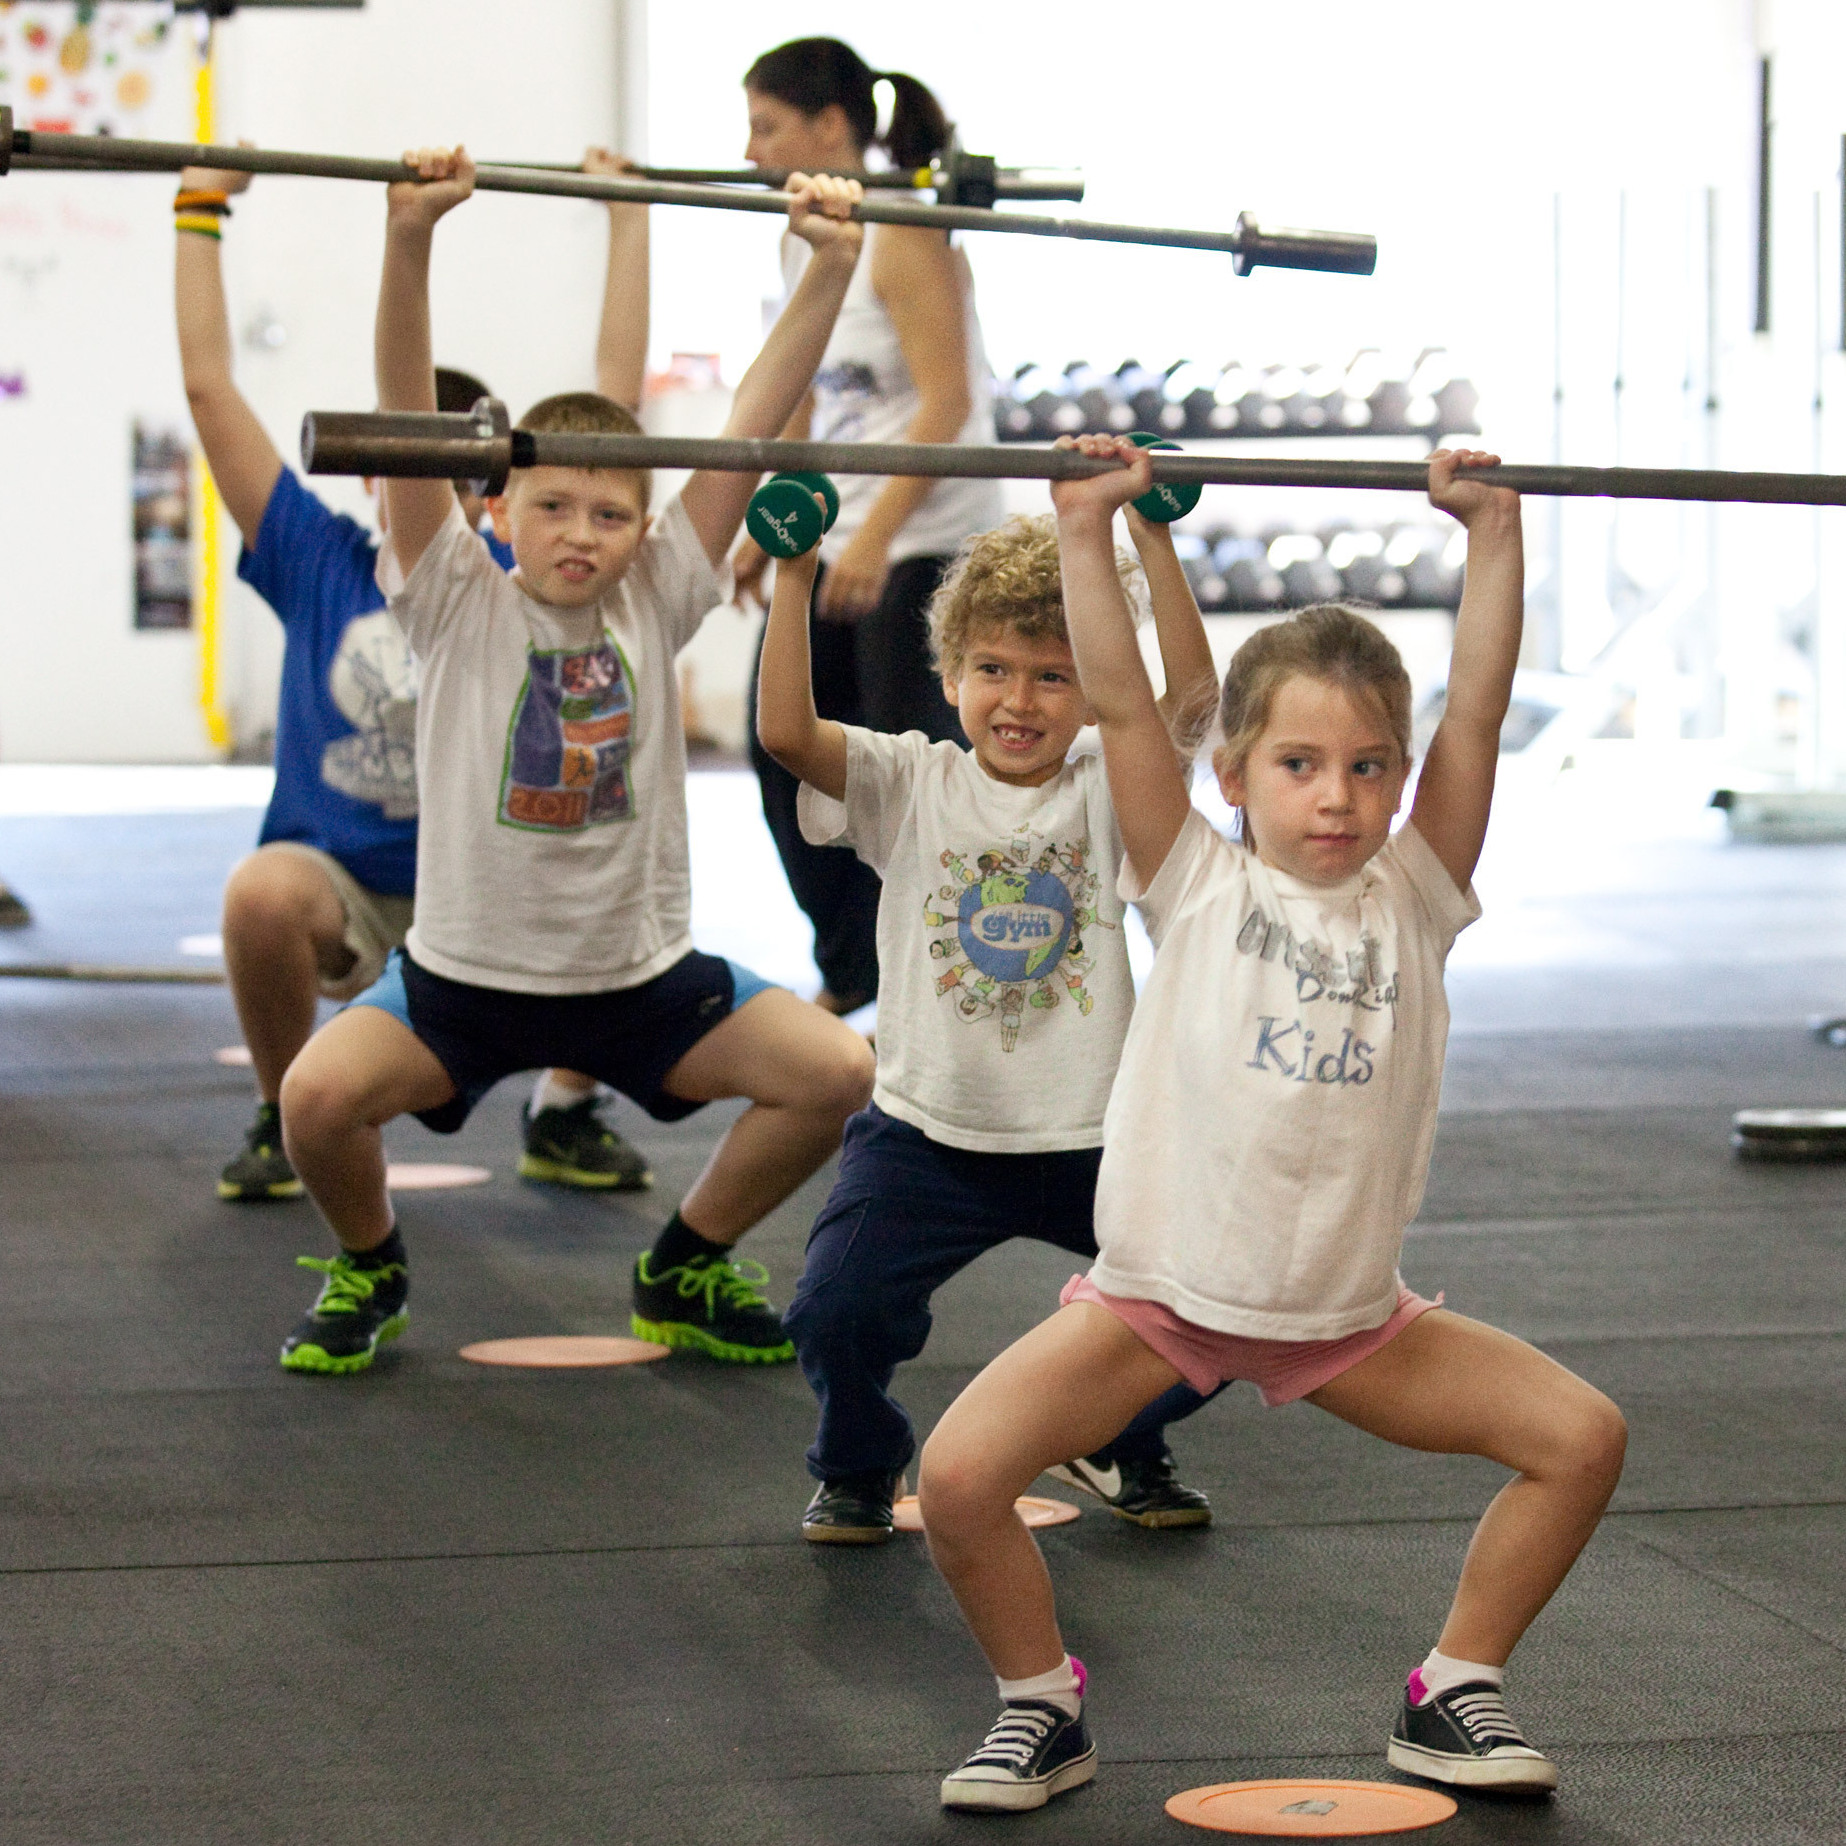 Six-year-old Rose MacDormett (front) lifts a barbell as part of a CrossFit class for children at CrossFit DoneRight in Rockville, Md.